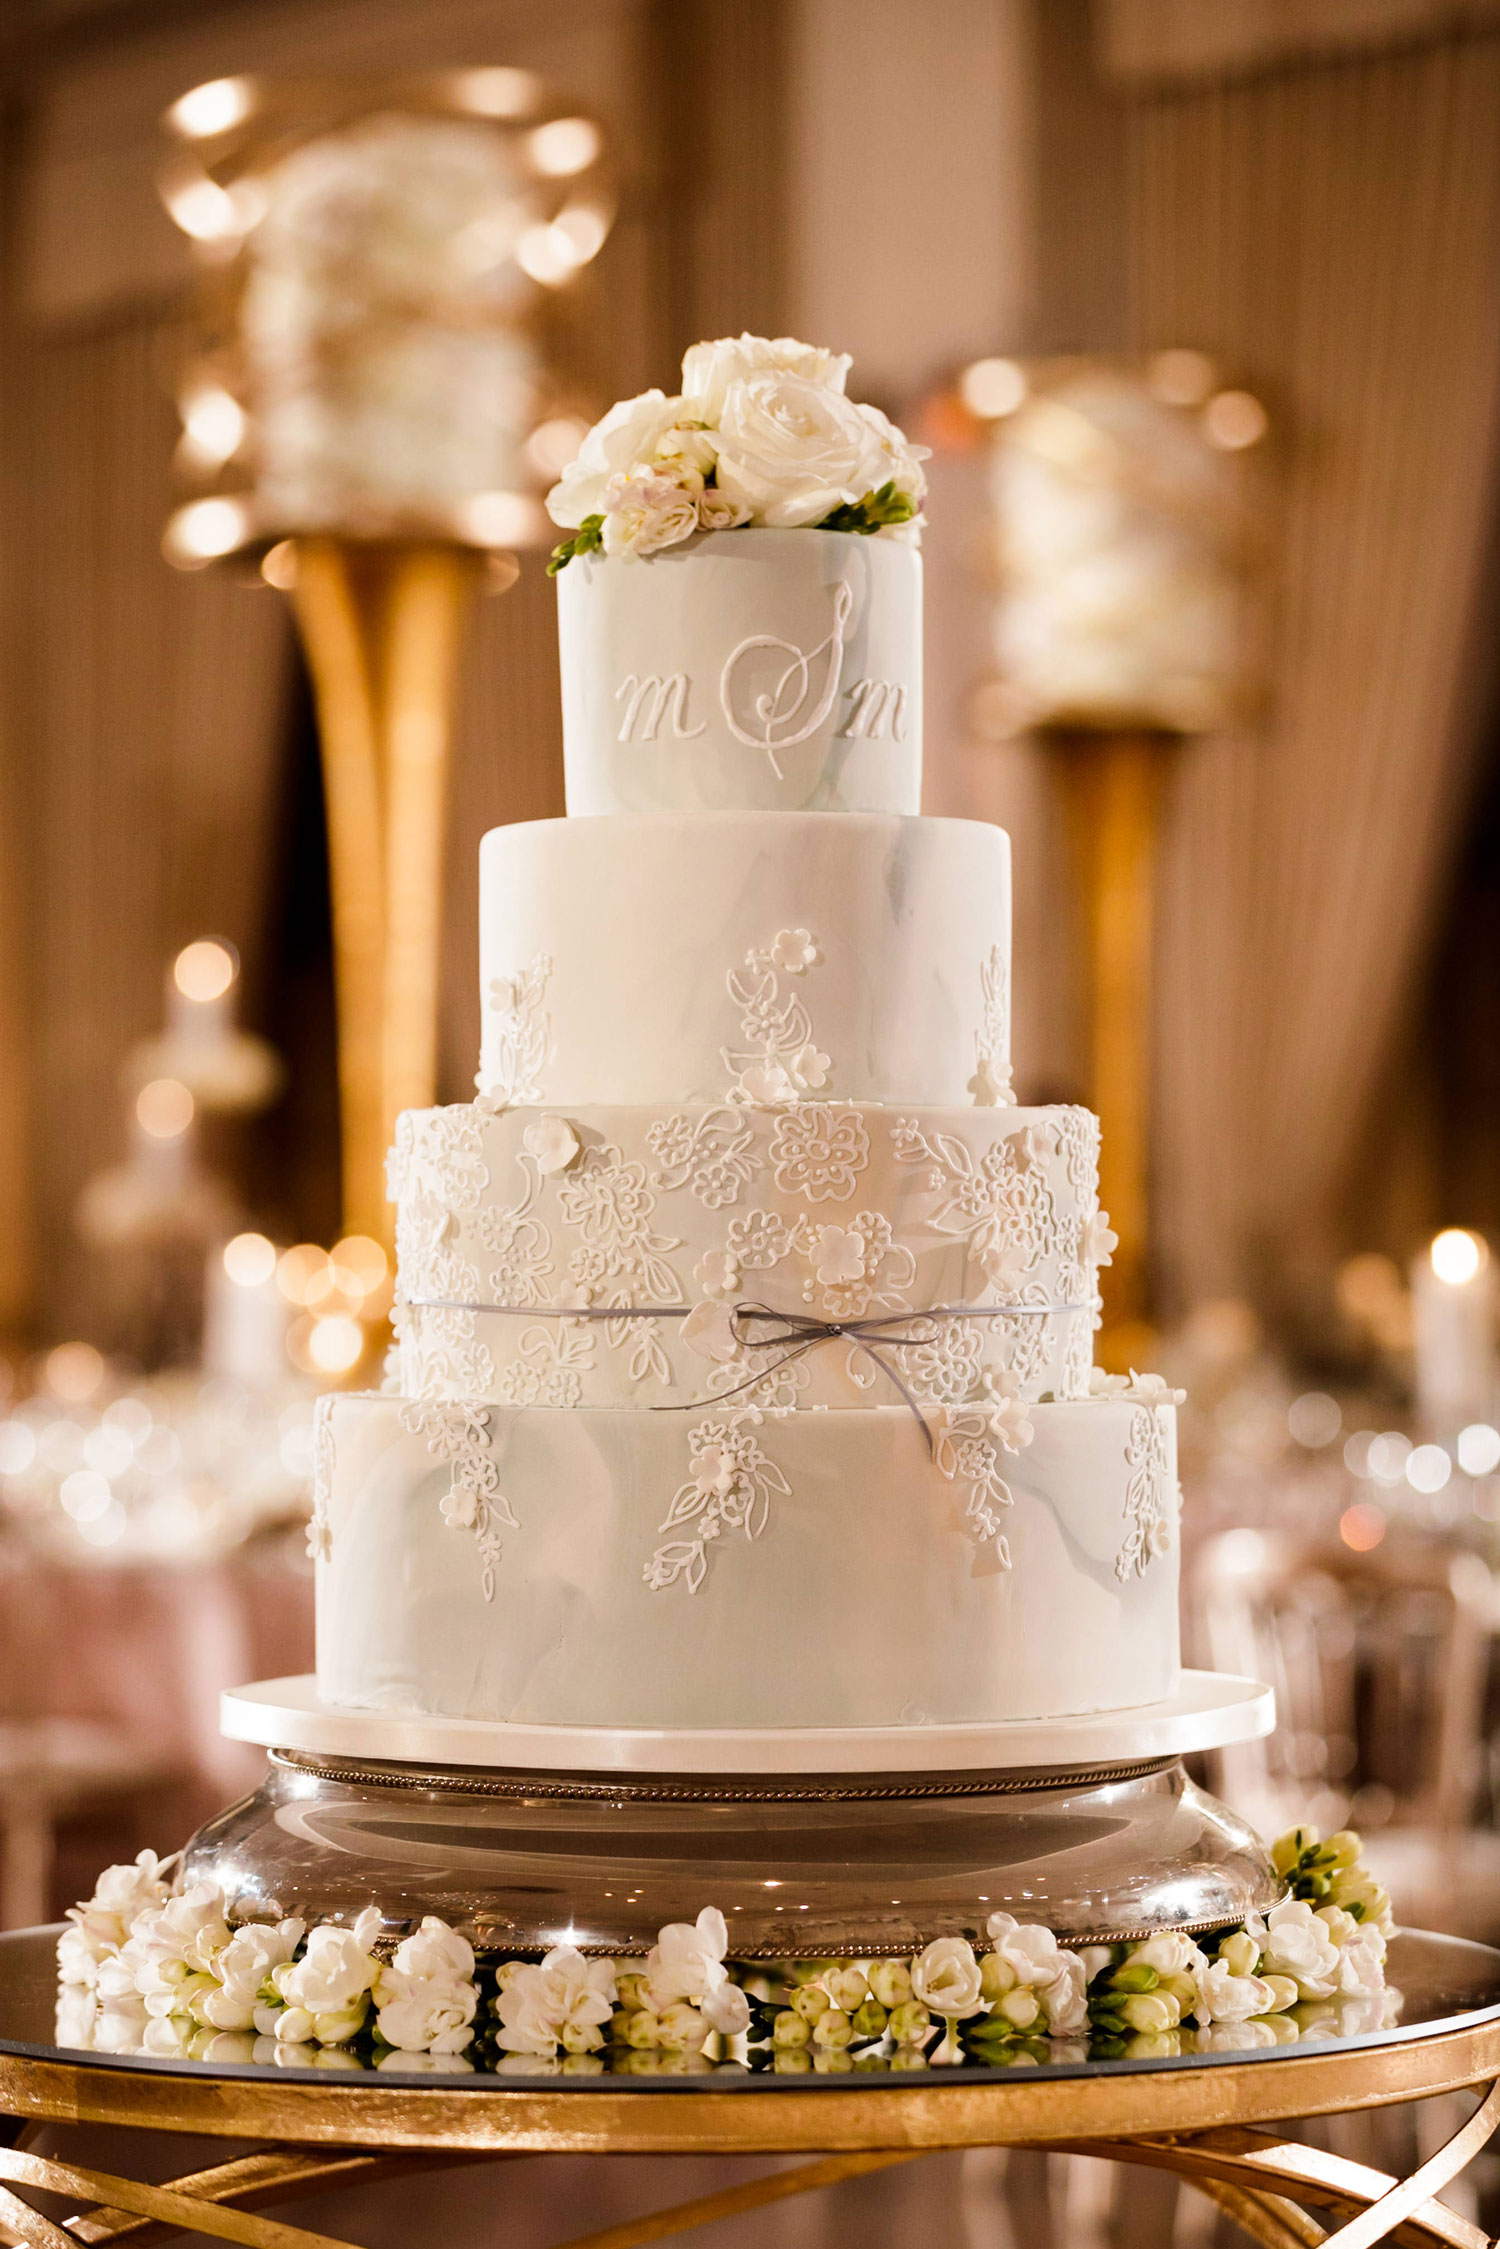 Wedding cake with monogram and bow inside weddings spring 2018 issue bob and dawn davis photography